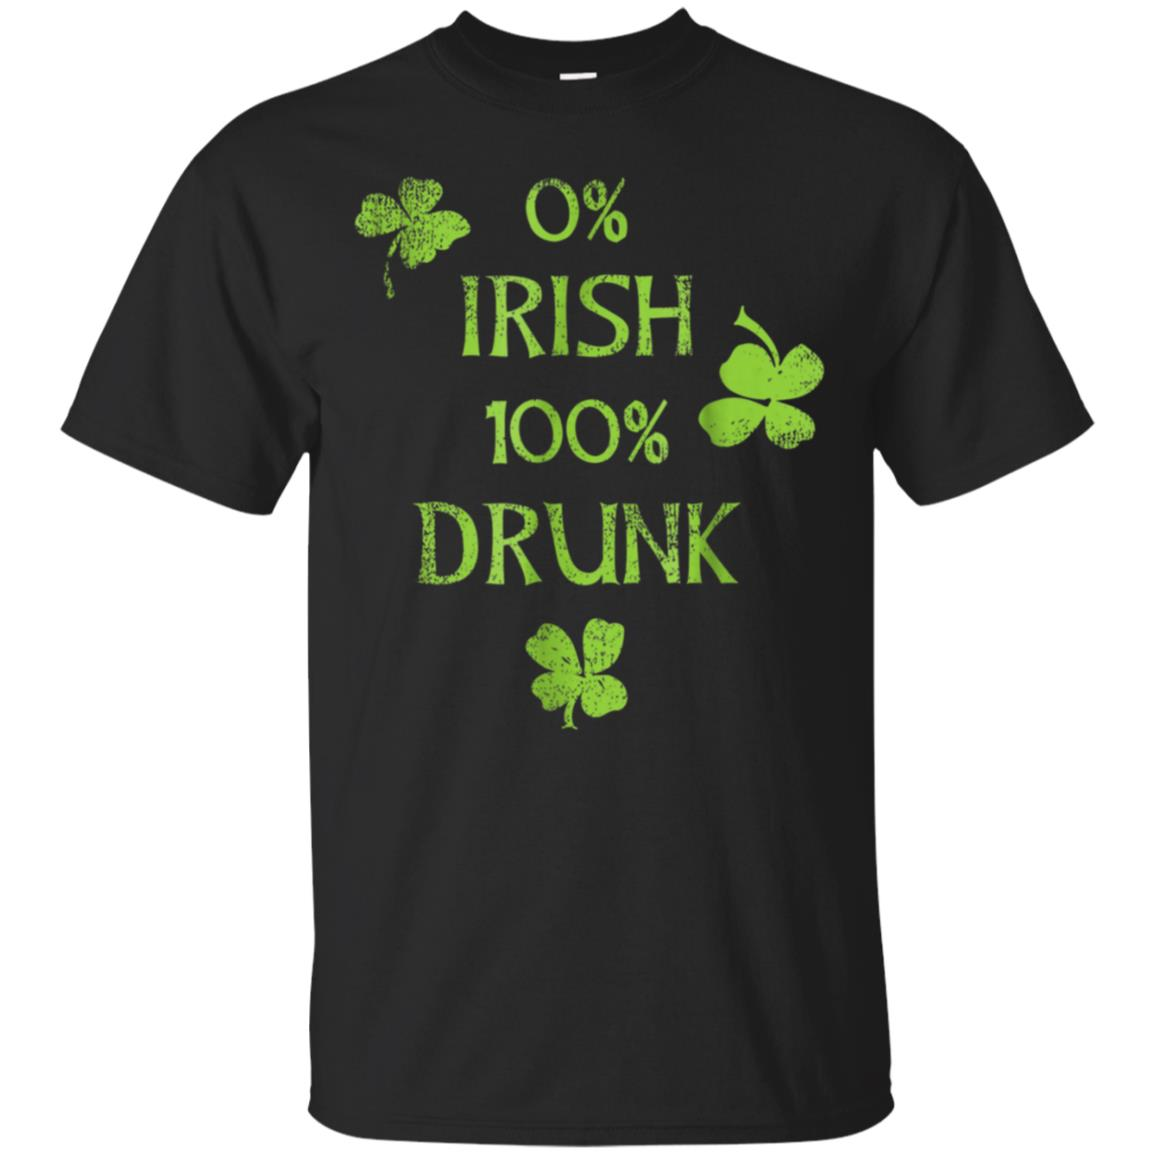 0% Irish 100% Drunk Tee Shirt 99promocode